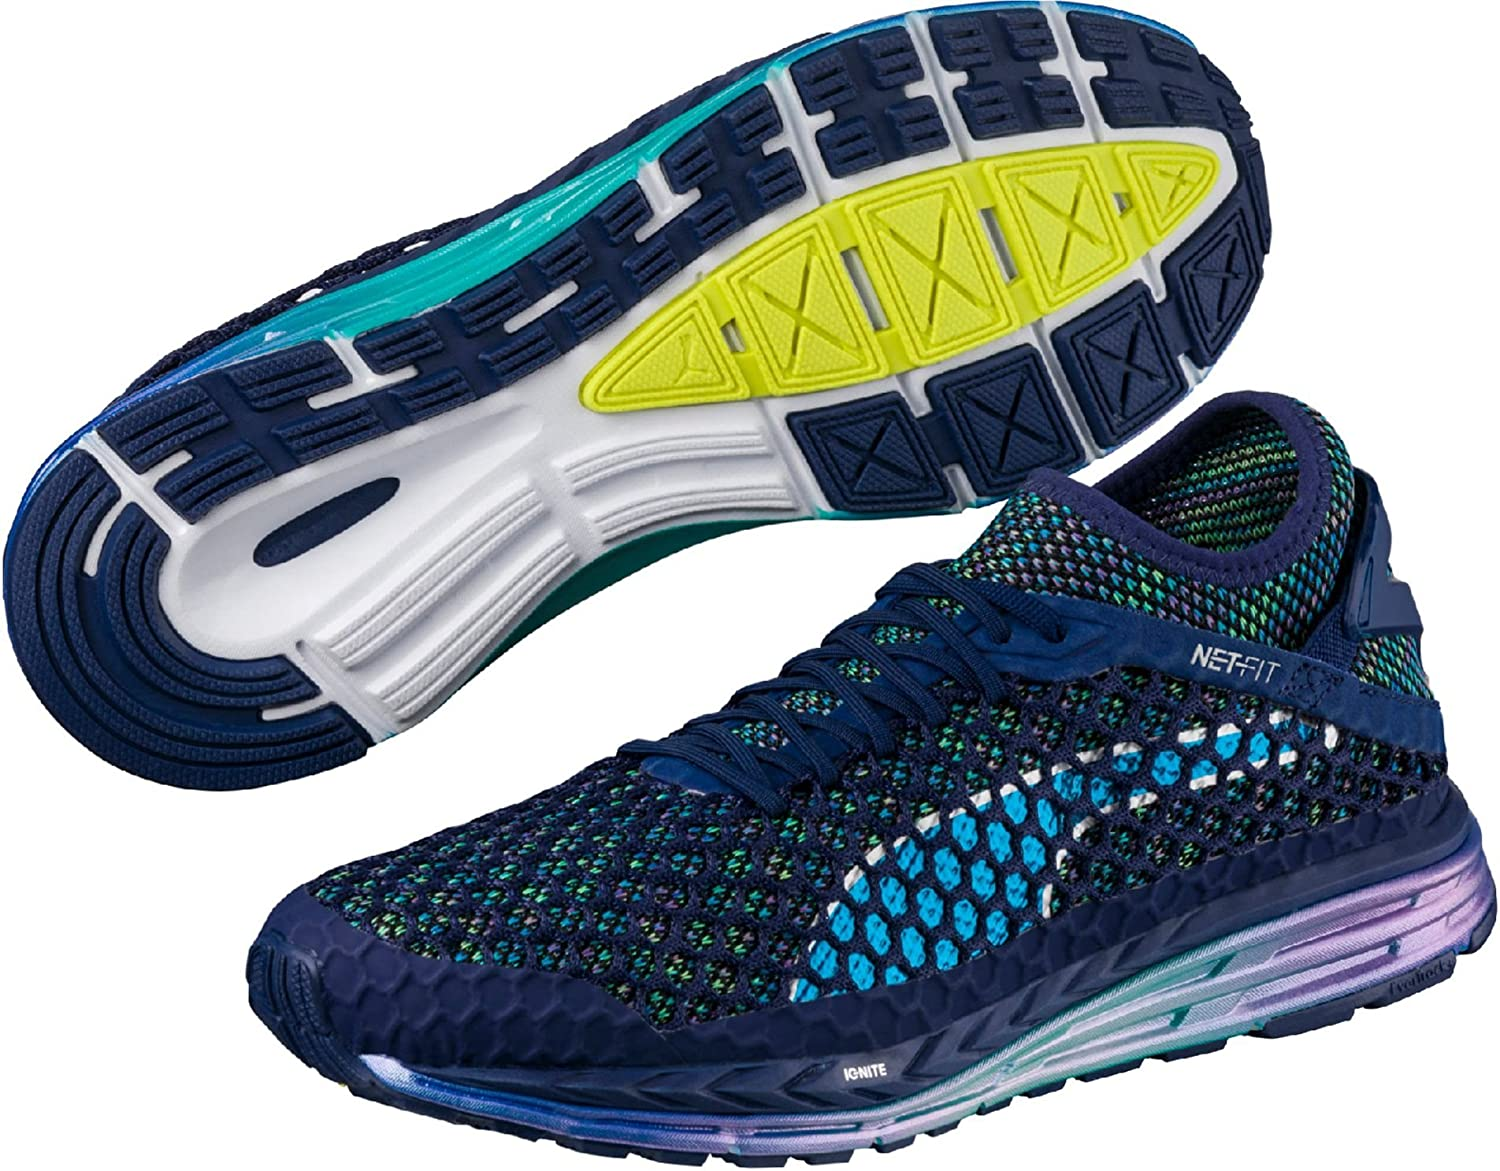 Puma Speed Ignite Netfit Champs Mens Running shoes - bluee